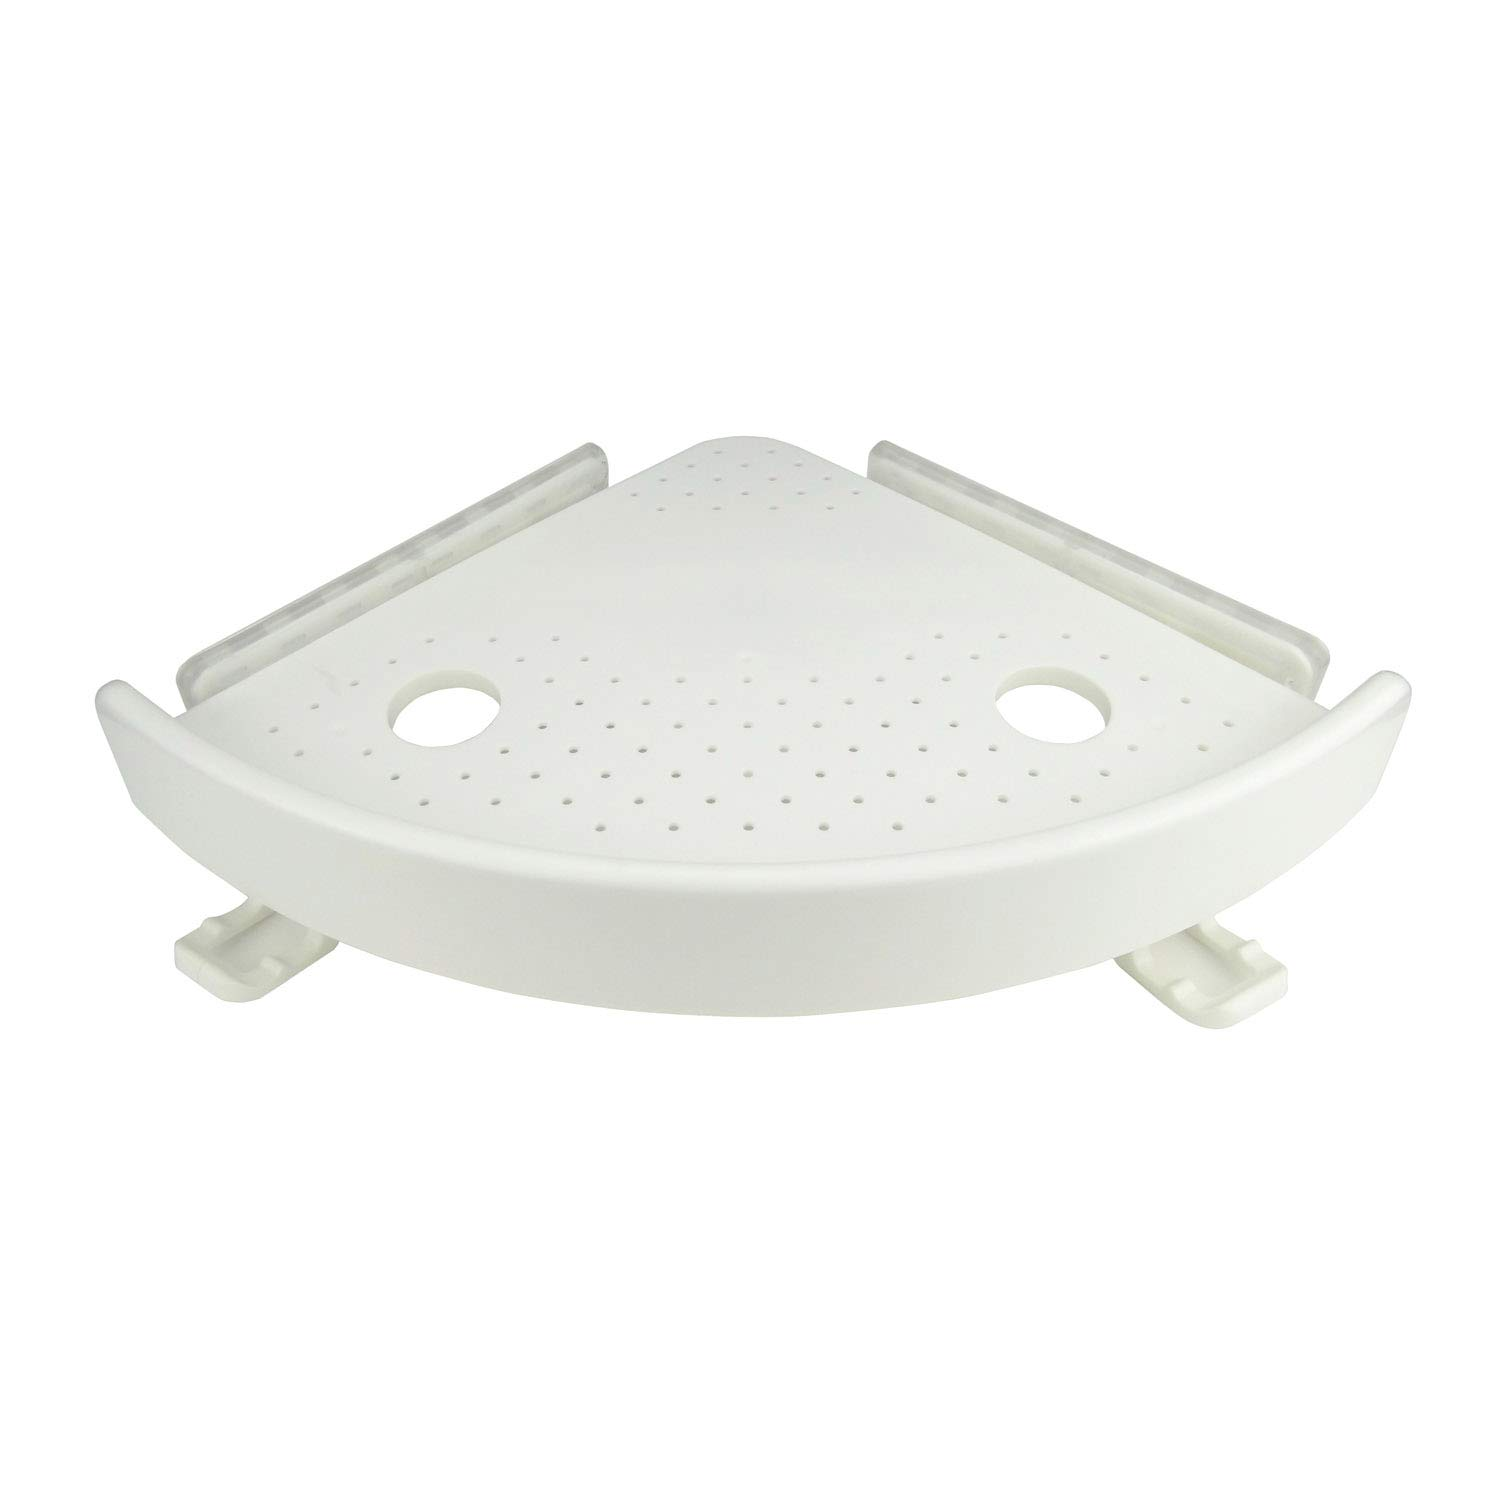 Plum Garden Corner Storage Holder Shelves, Fan Shaped Corner Holder for Bathroom, Kitchen, Balcony, Marble, Drywall, Glass